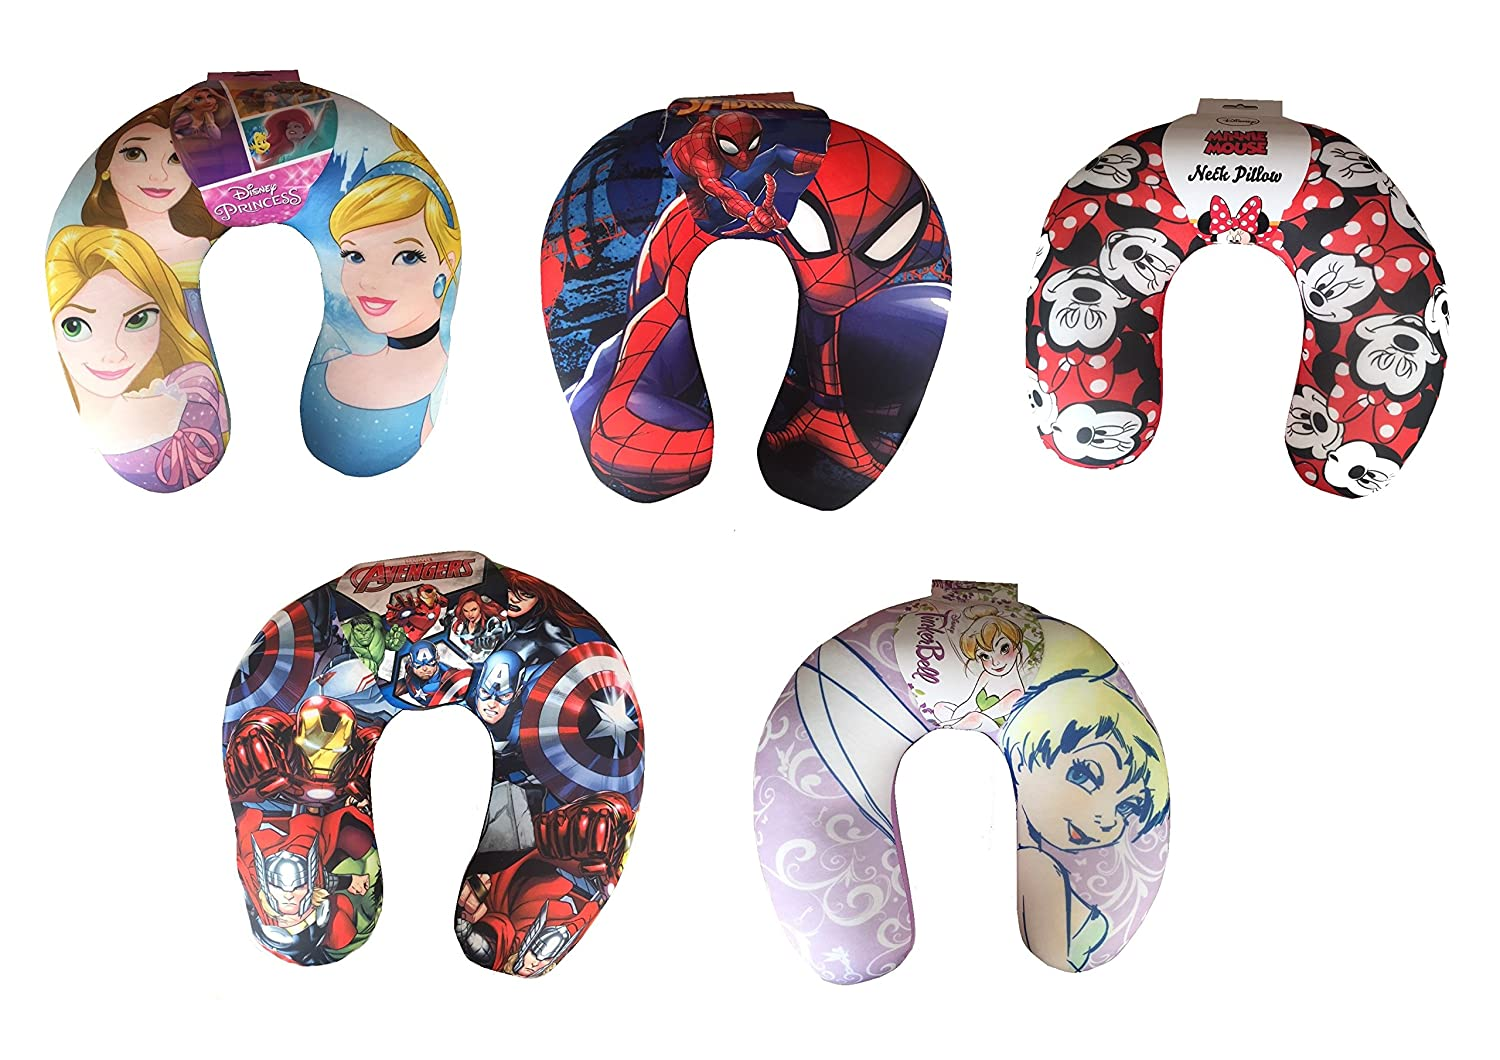 Kids Cartoon/Film Themed U Shaped Comfy Relaxing Neck Support Pillow Cushion (Disney Princess) Kids Neck Pillows